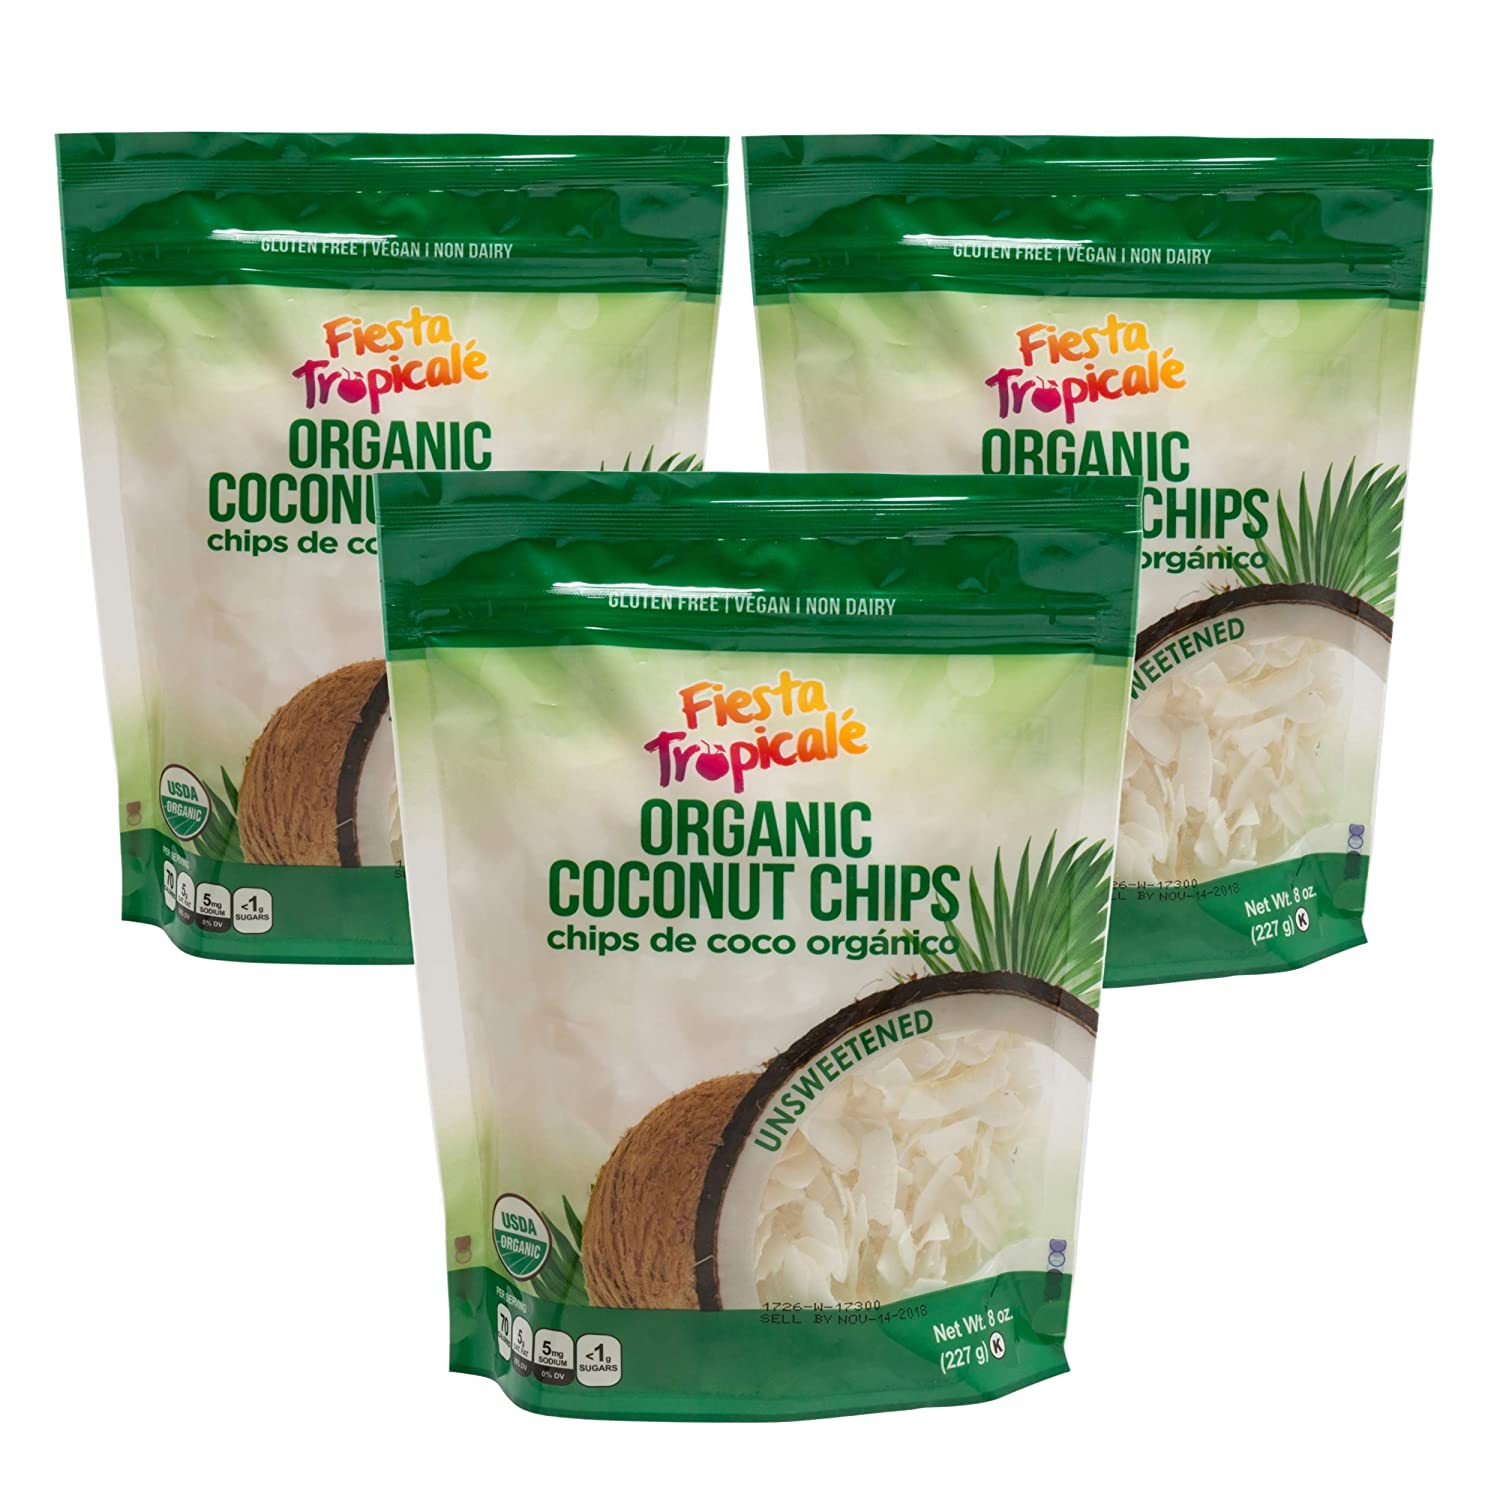 Shredded Large Coconut Flakes (Coconut Chips) Organic Keto Unsweetened 8 Ounce Bag (Pack of 3) Gluten Free Sugar Free Great Toasted for Vegan Paleo Snacks Trail Mix Granola by Fiesta Tropicale